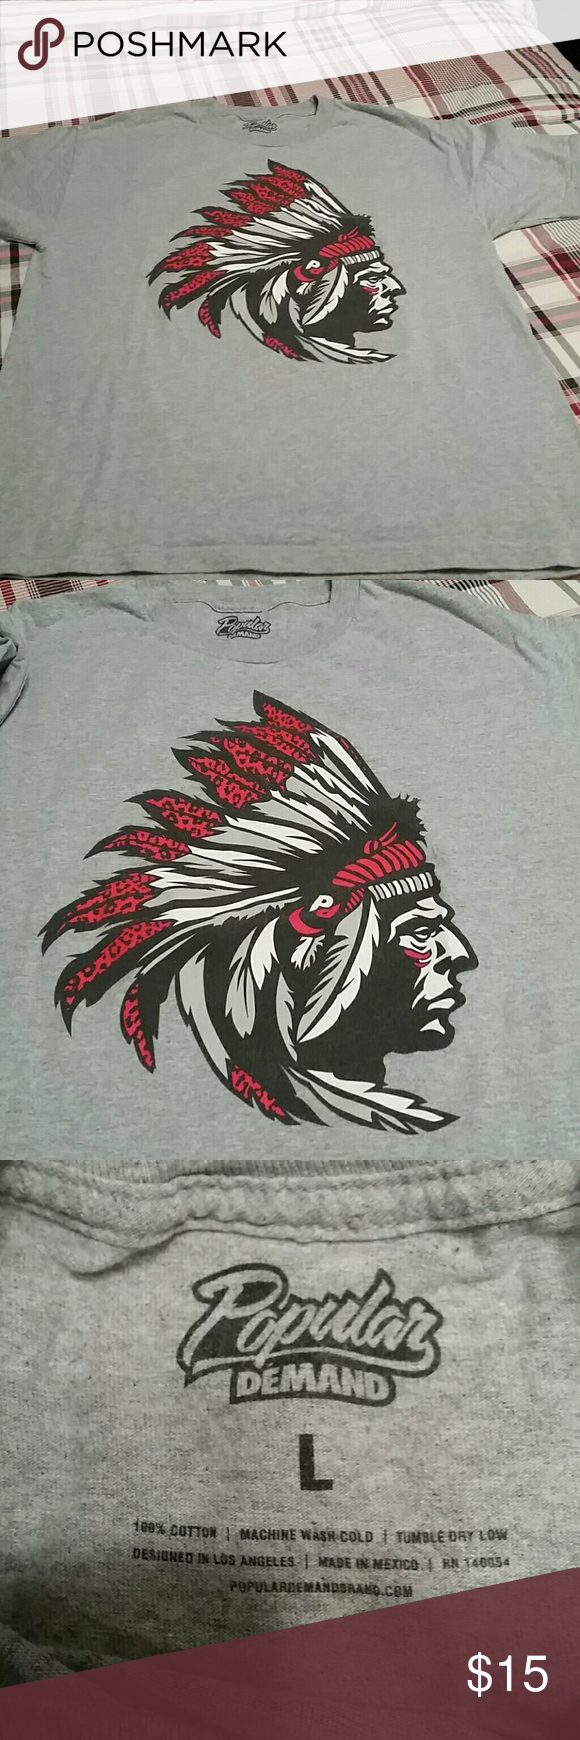 Popular Demand Graphic t Grey, Indian chief graphic t by Popular Demand. Designed in L.A. Size L. Perfect condition. Popular Demand  Shirts Tees - Short Sleeve